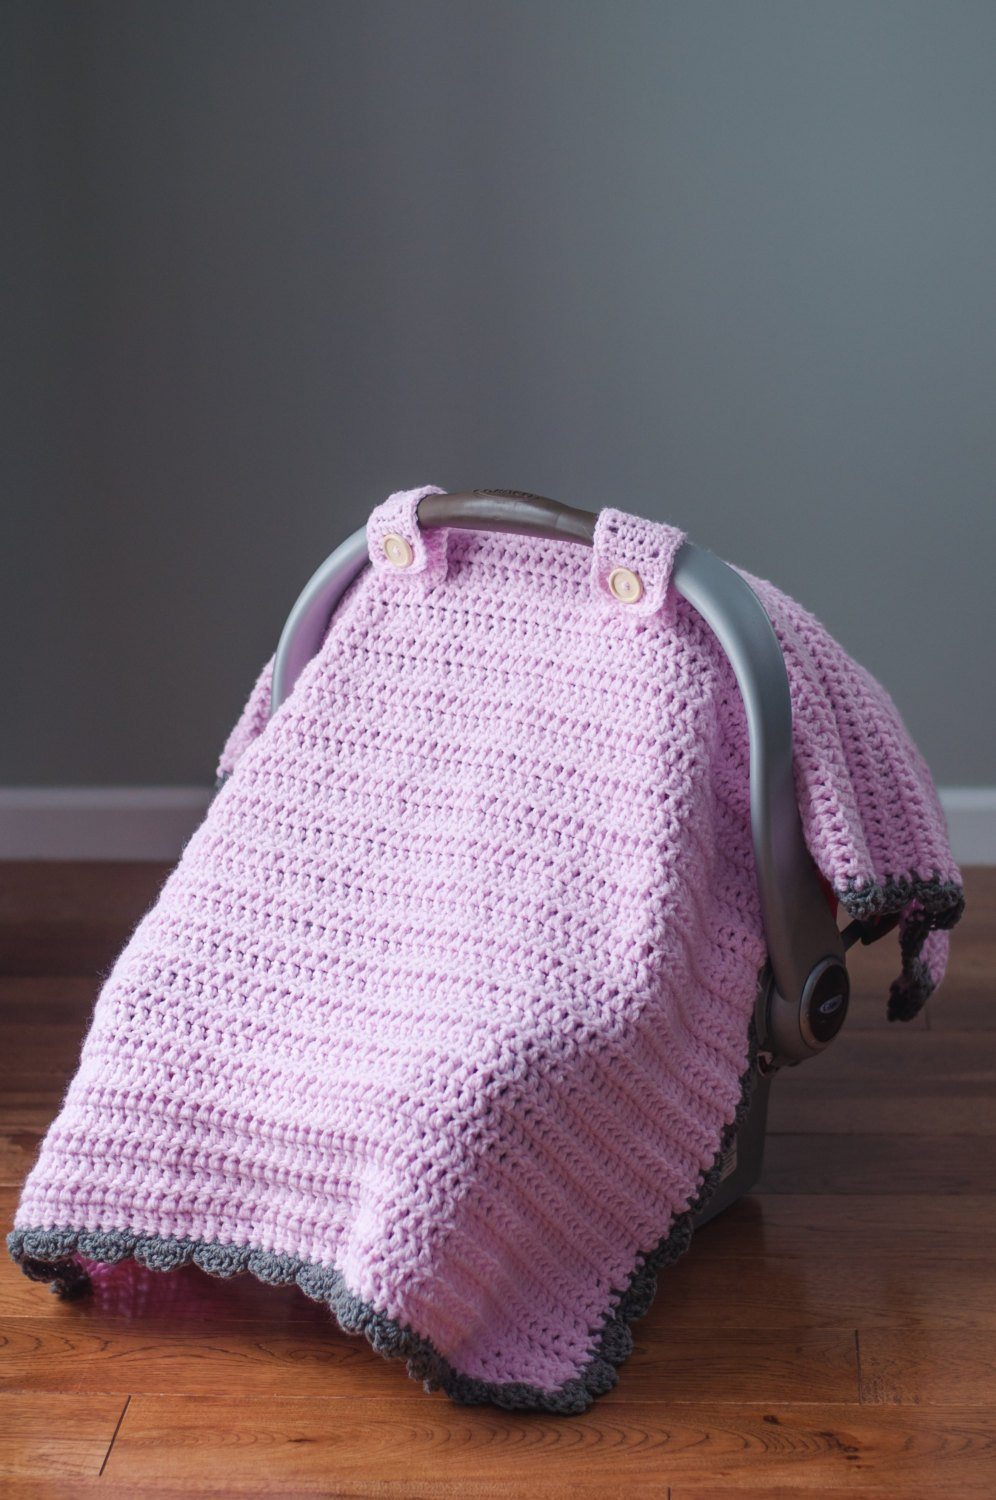 Awesome the Thick and Quick Crochet Car Seat Canopy Tent Crochet Car Seat Cover Pattern Of Wonderful 44 Pictures Crochet Car Seat Cover Pattern